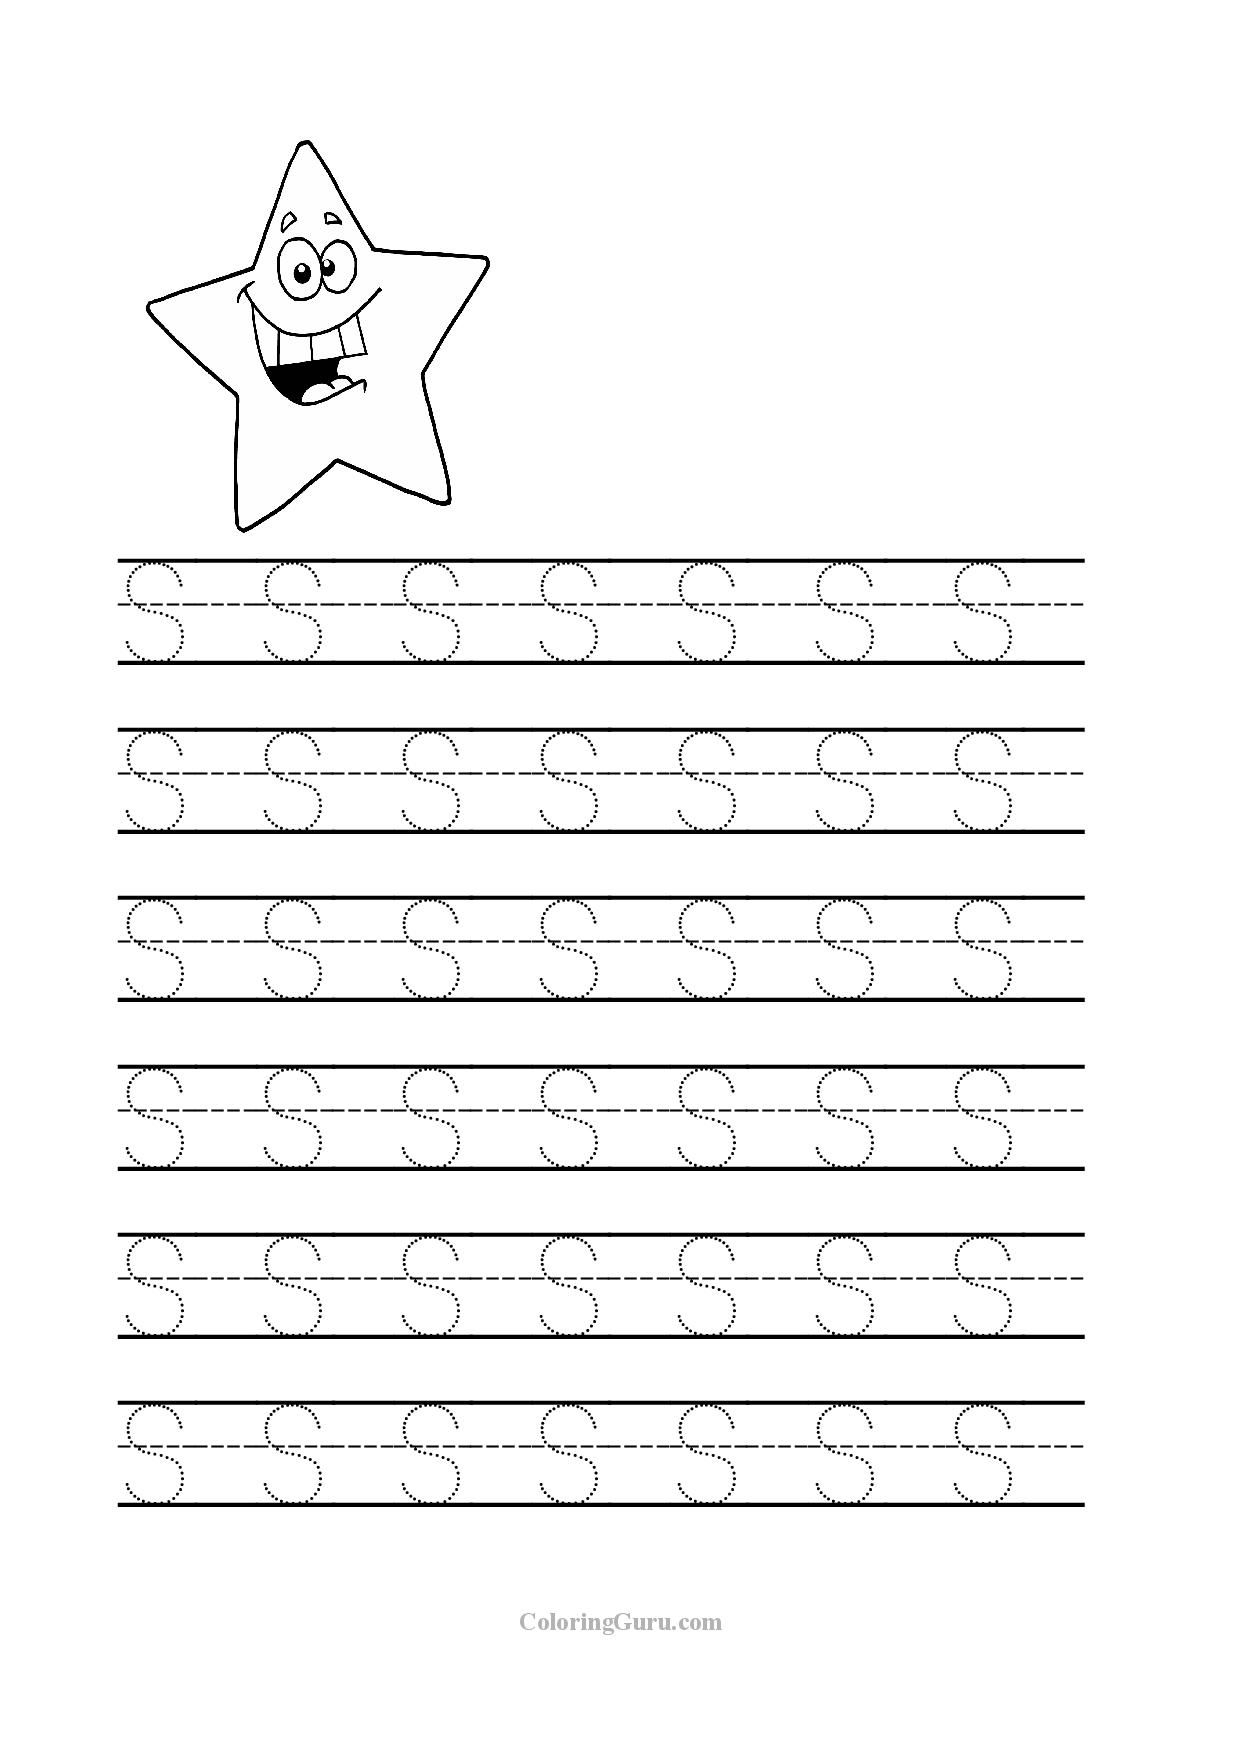 Free Printable Tracing Letter S Worksheets For Preschool inside Alphabet Tracing Letters Free